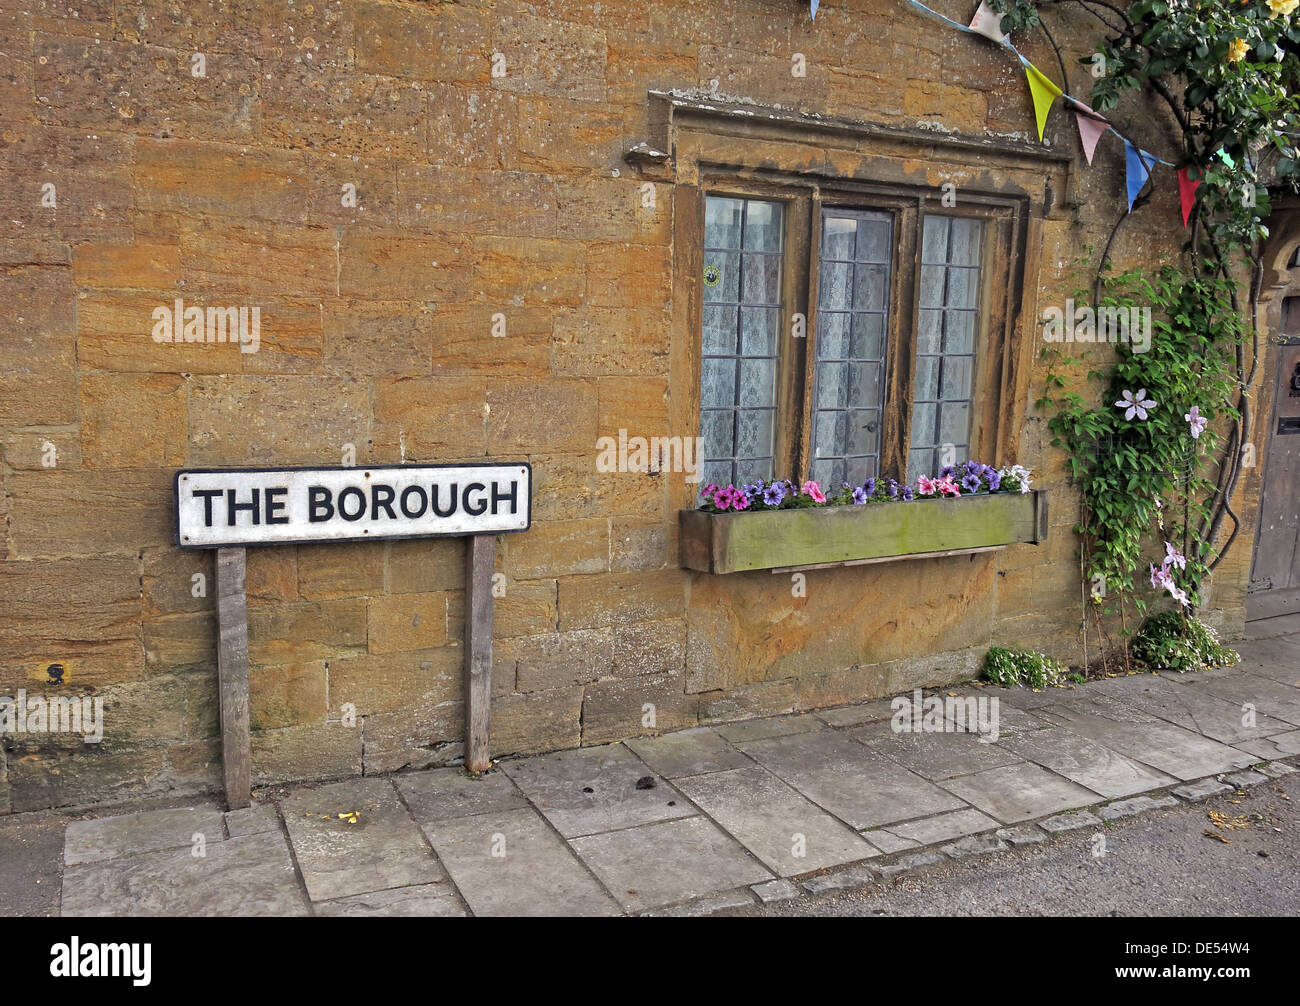 The Borough, square, Montecute, South Somerset, England, UK - Stock Image